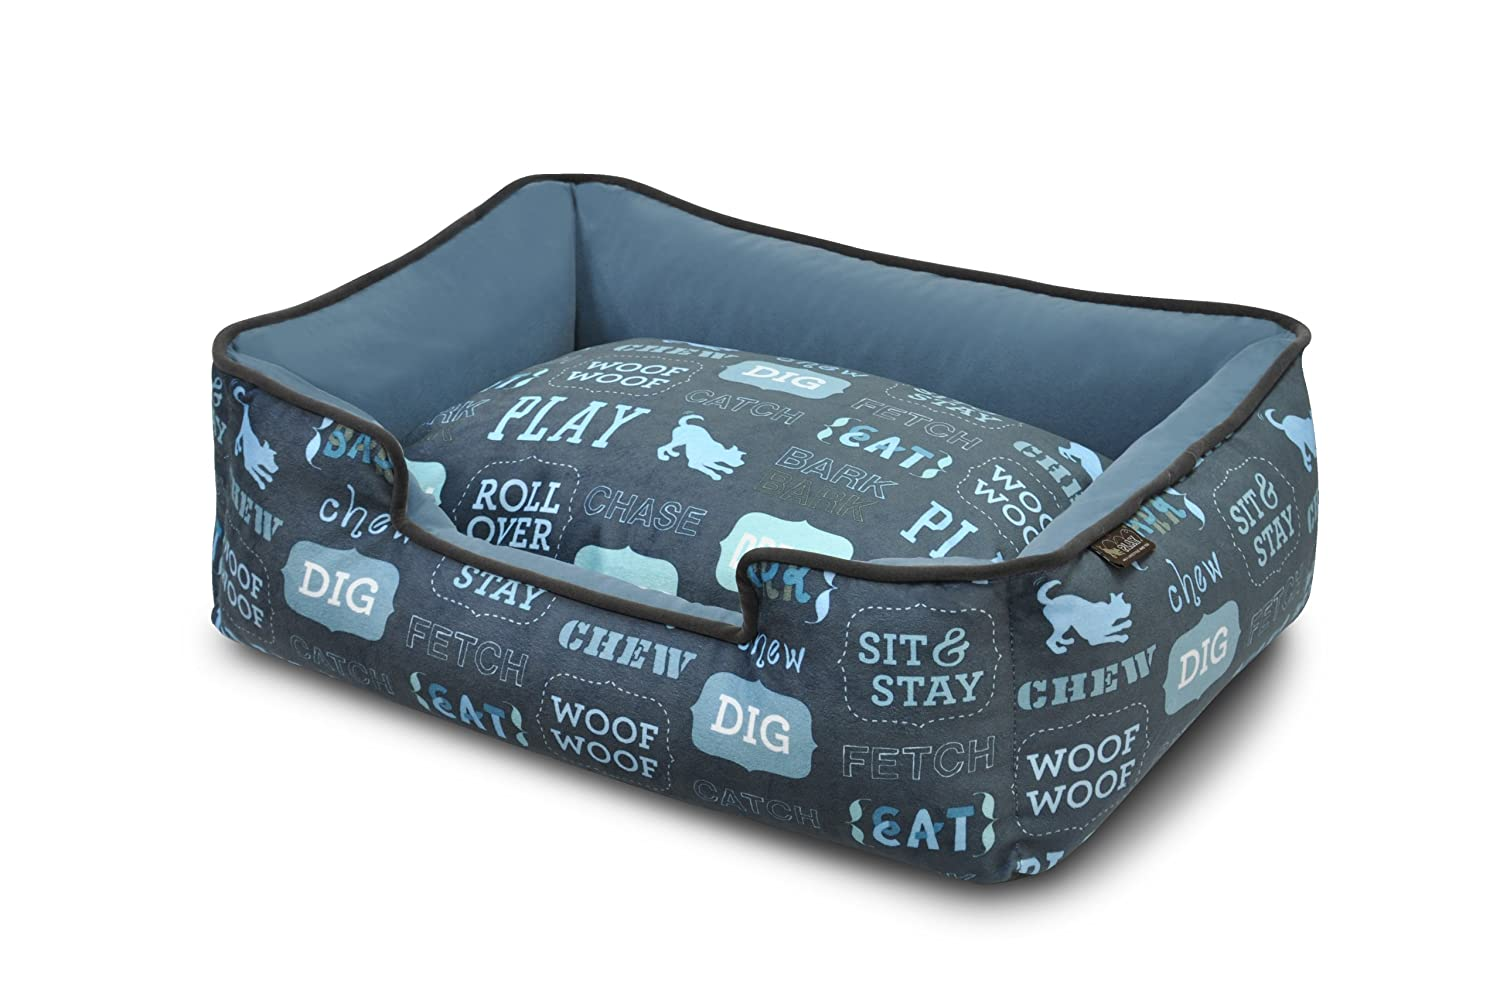 Dog's life dark bluee X-Large Dog's life dark bluee X-Large P.L.A.Y. 817152012092 Pet Lifestyle and You Dog's Life Dark bluee Lounge Bed, X-Large